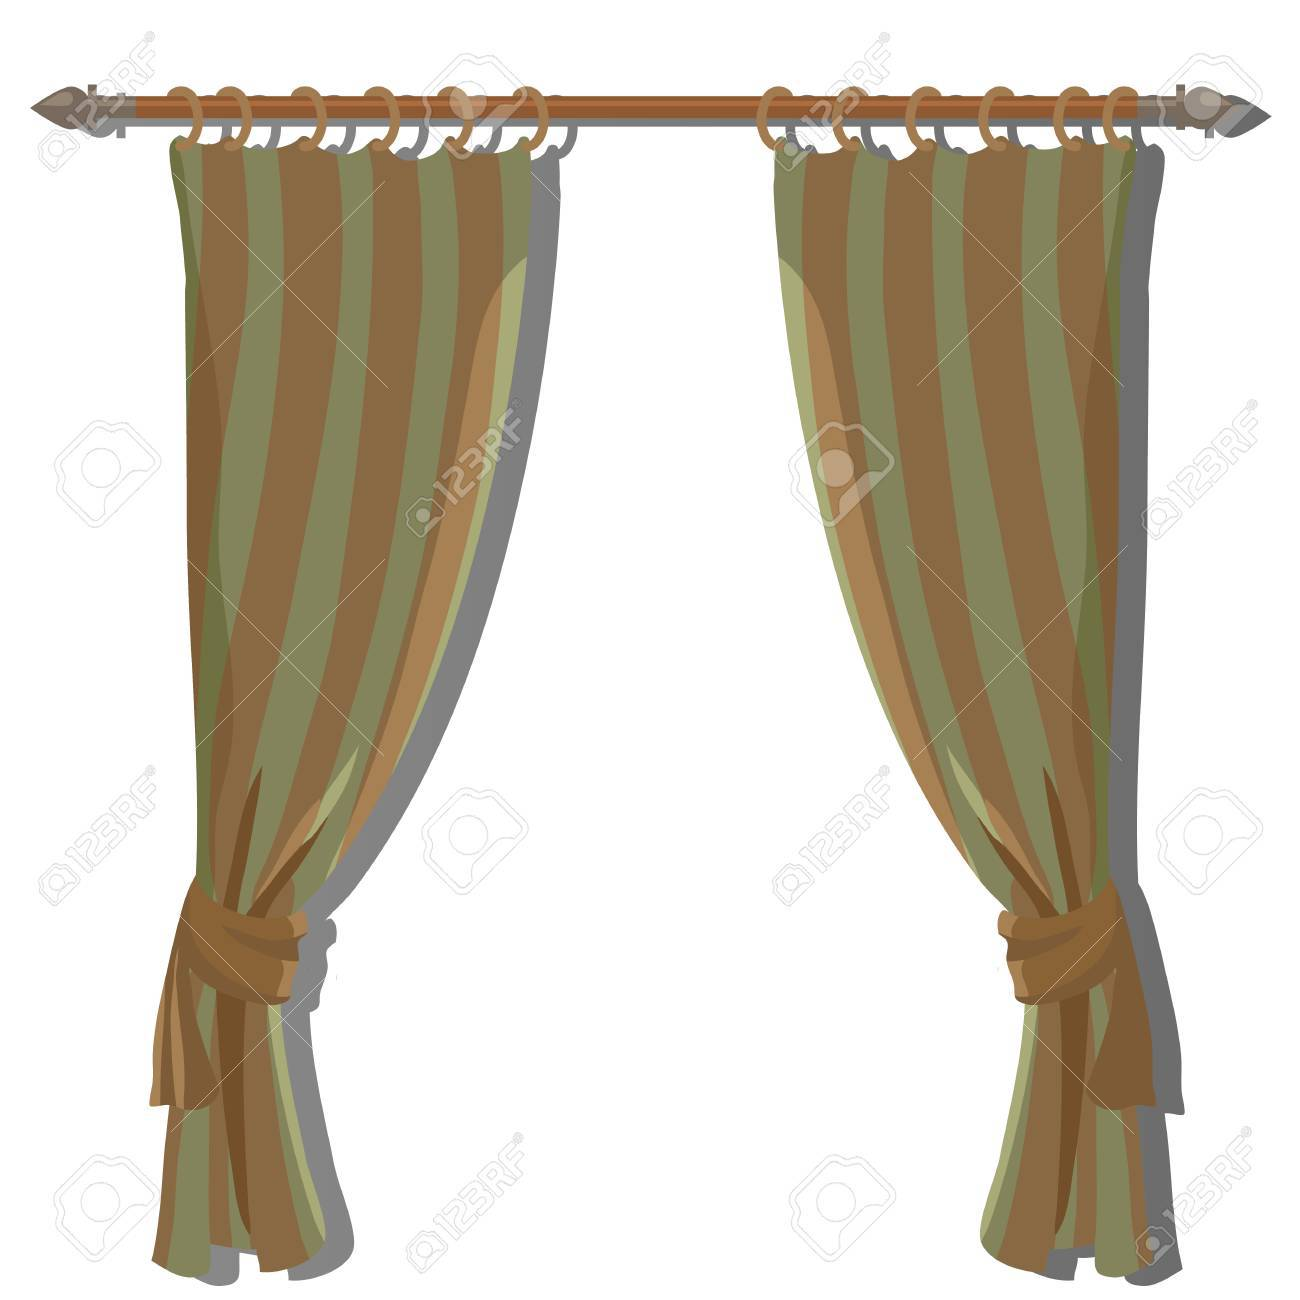 Green Striped Kitchen Curtains On The Ledge, Vector Decor Stock Vector    58060445